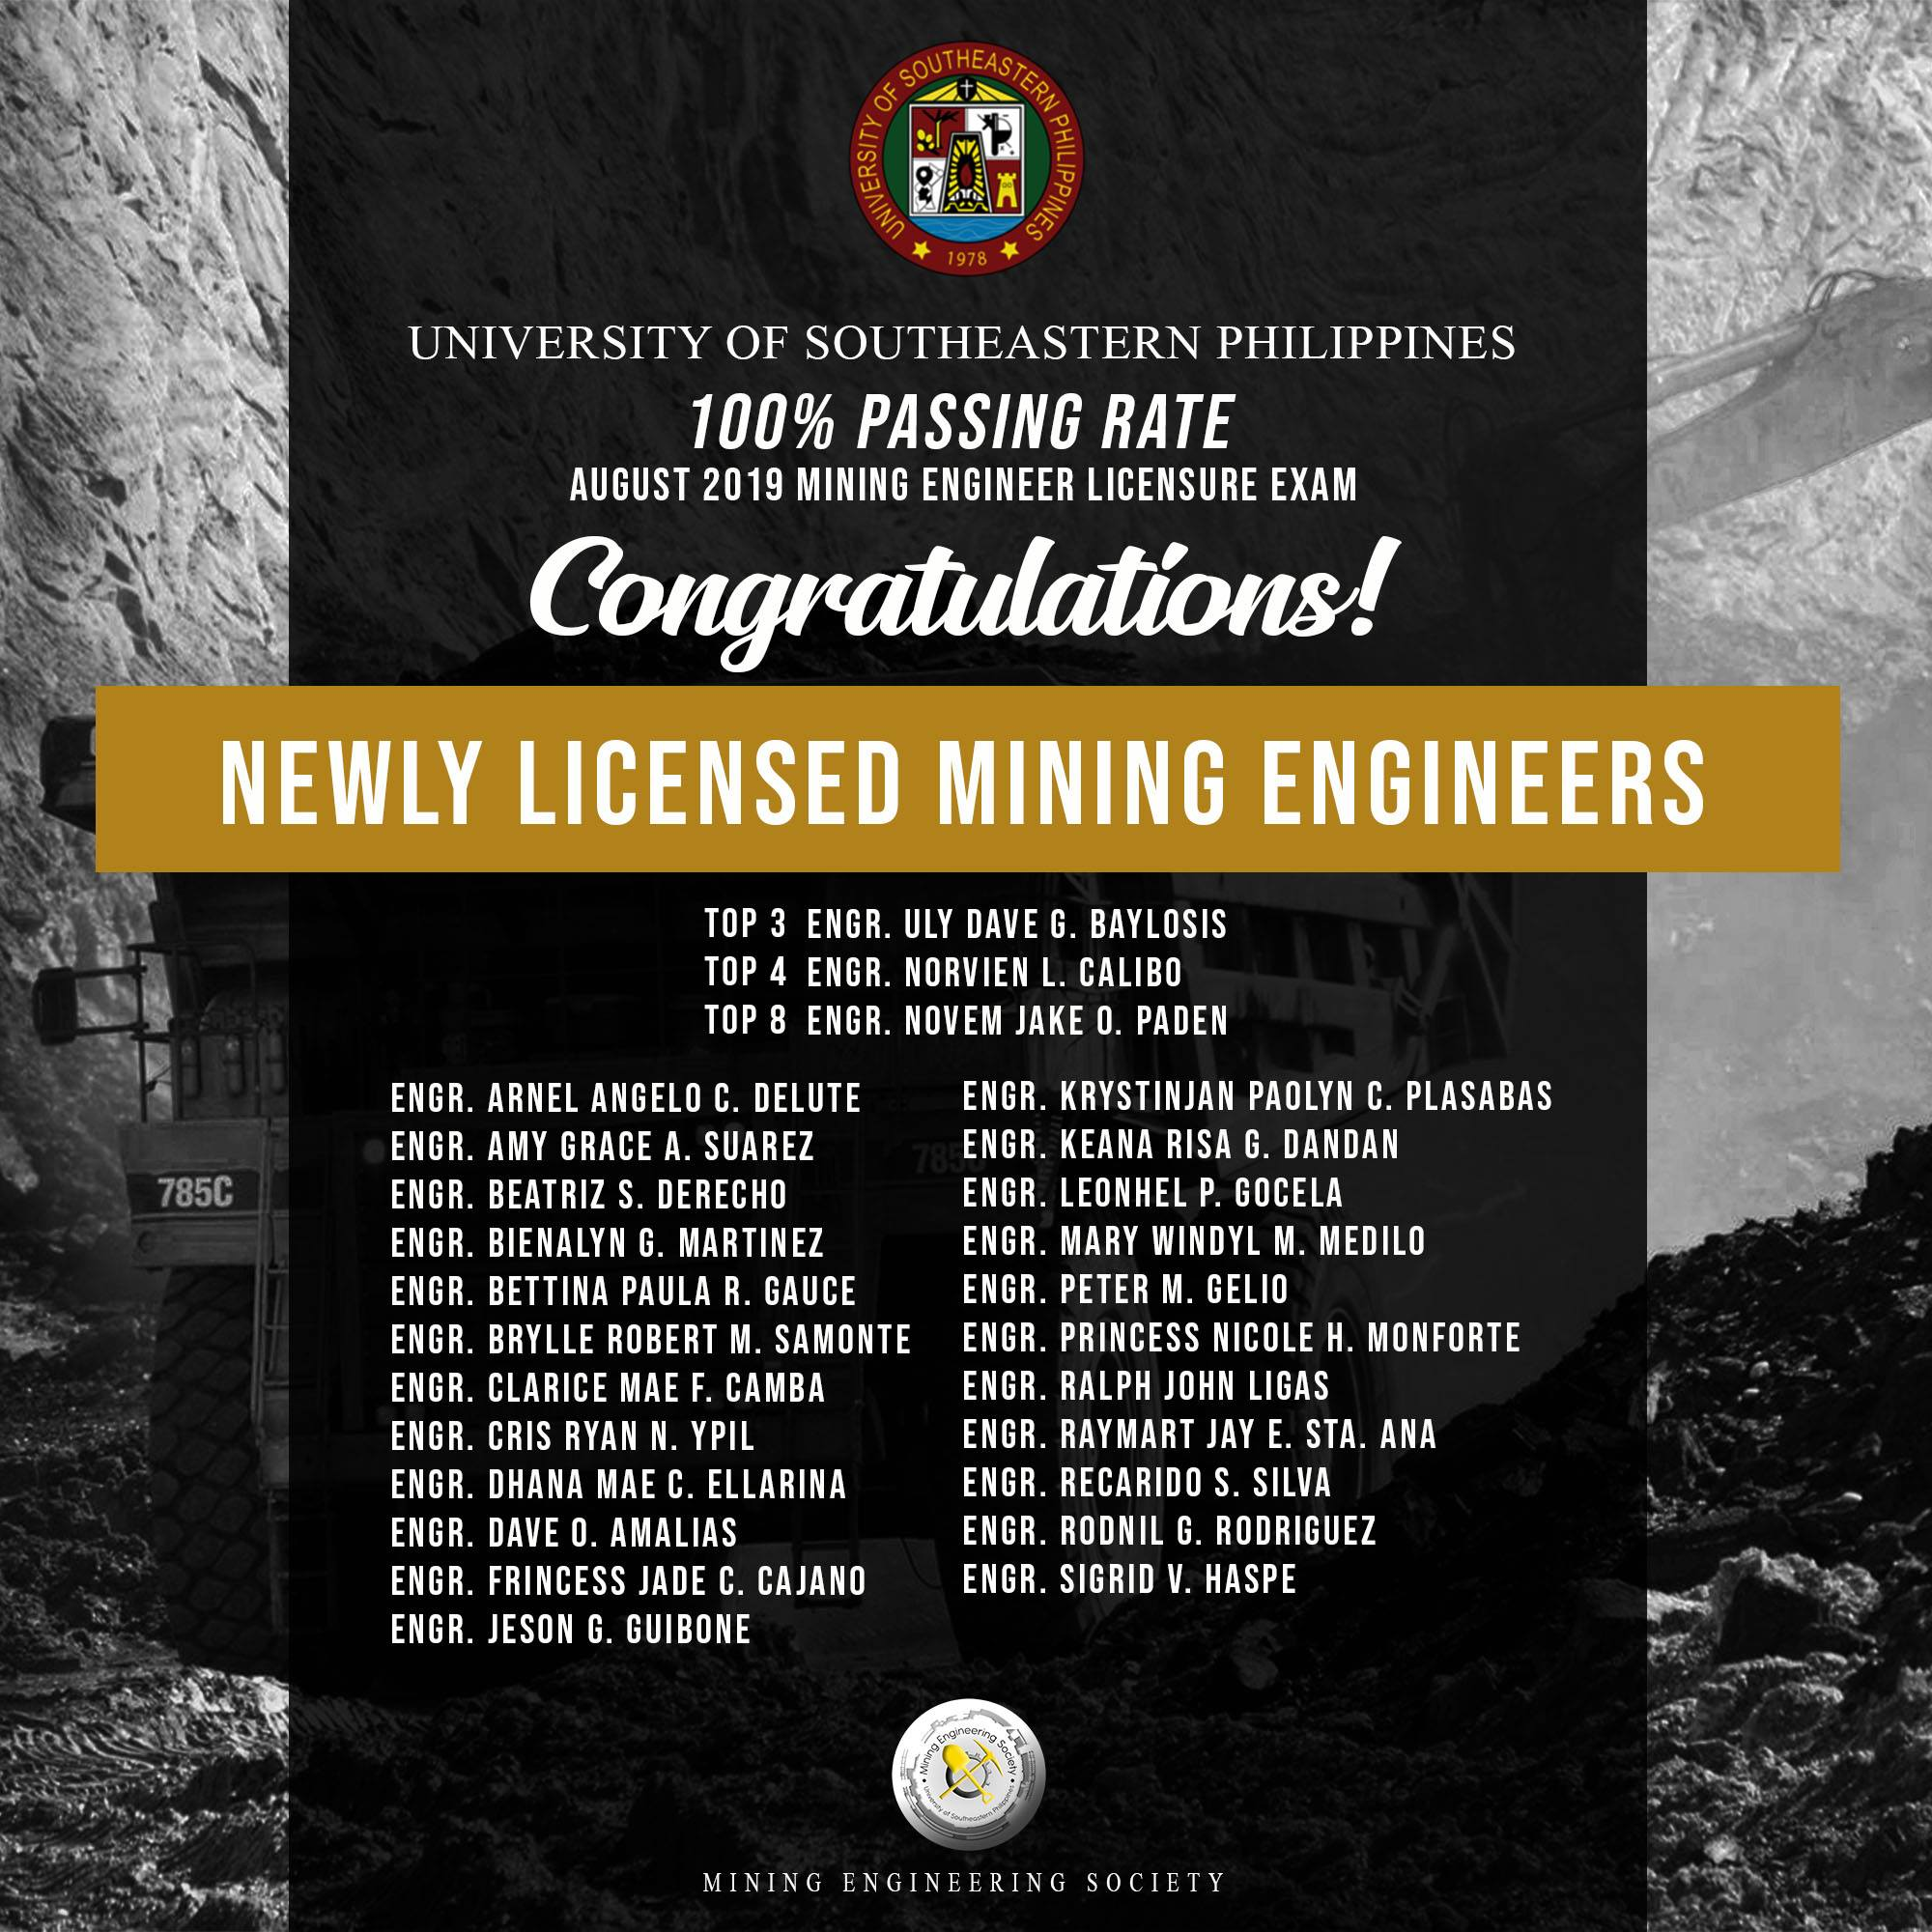 Congratulations University of Southeastern Philippines for garnerning 100% passing rate in the recently concluded Mining Engineering Board Examinations.